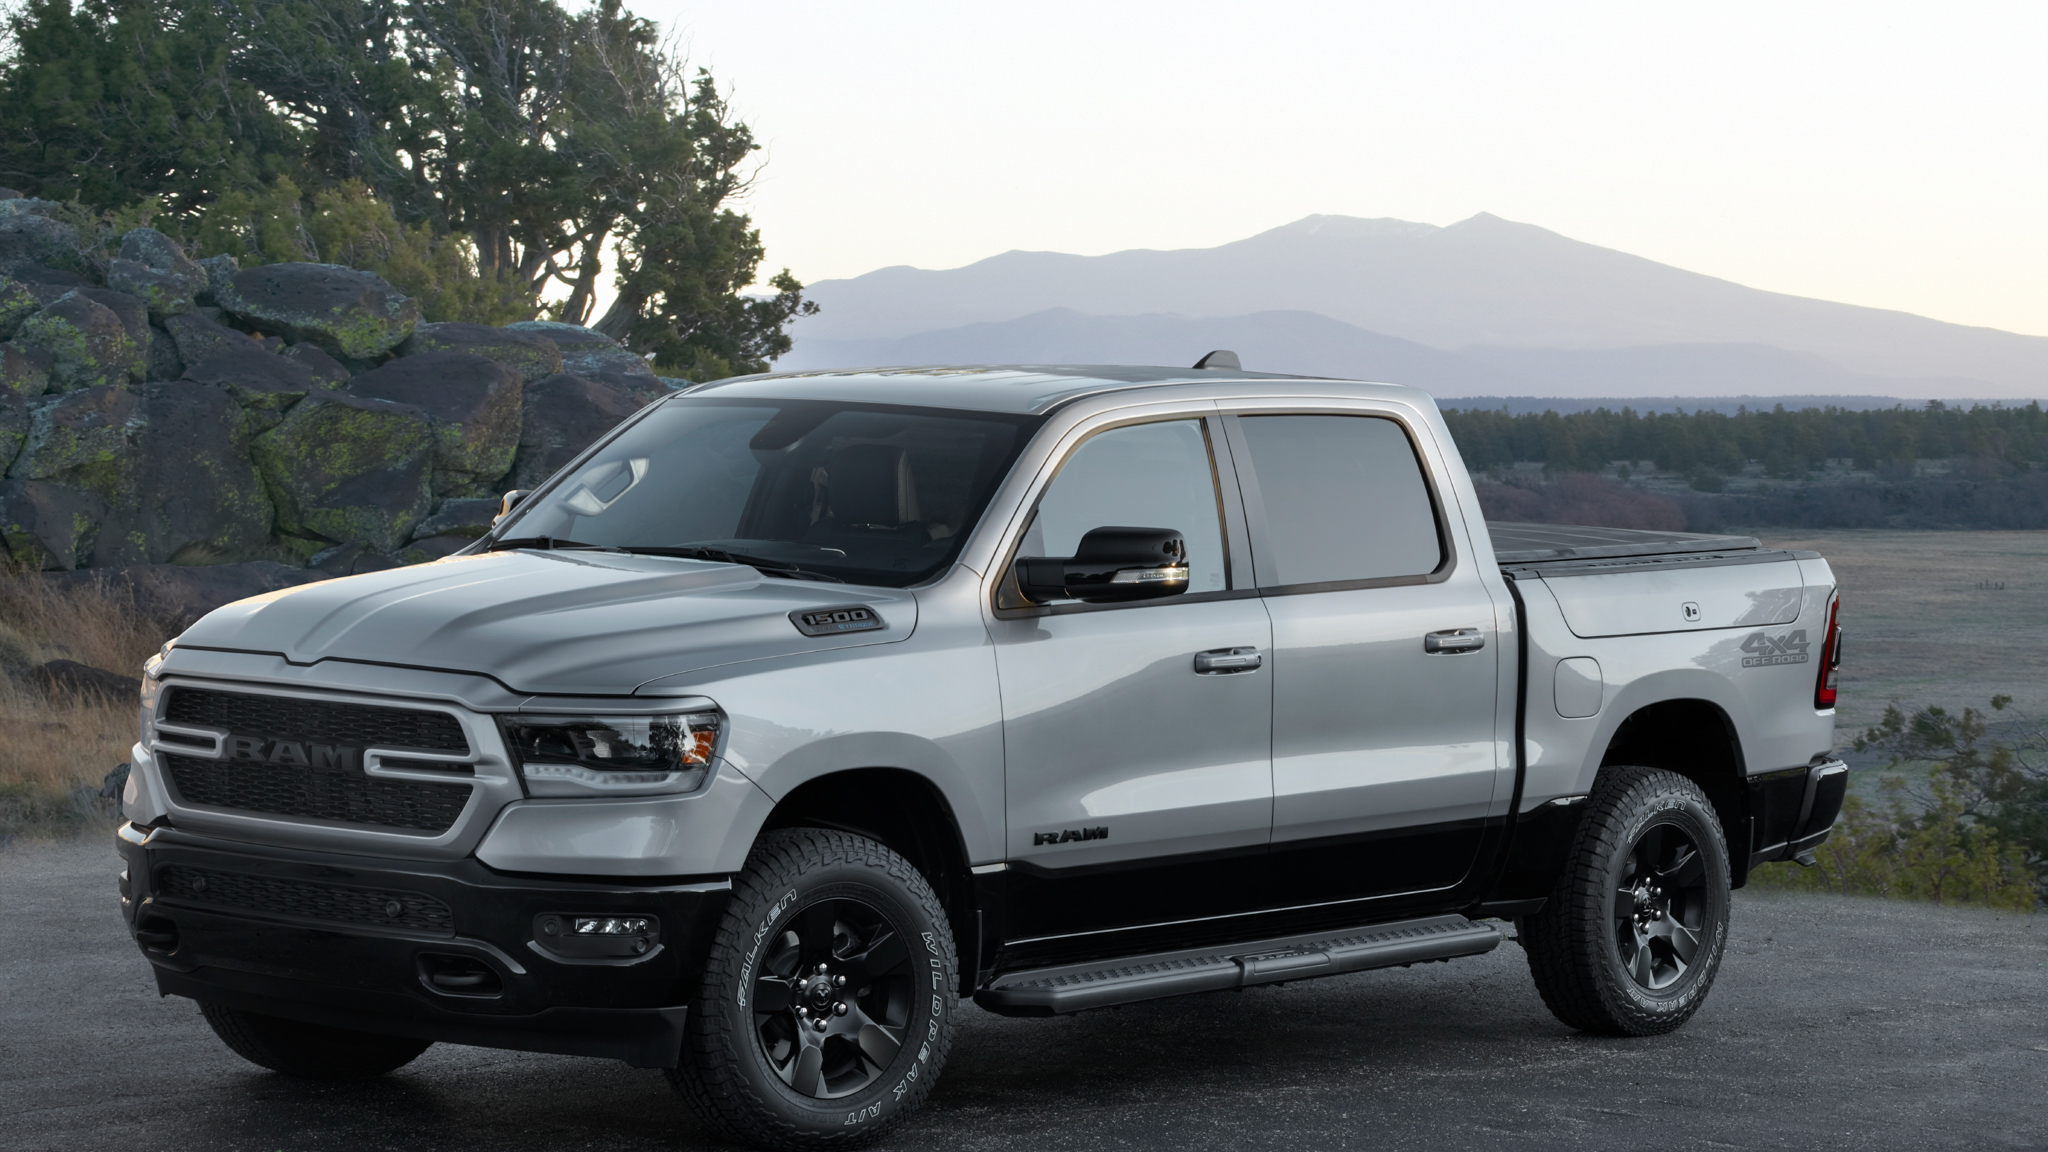 2022 Ram 1500 BackCountry Edition: Off-Road Made Easy